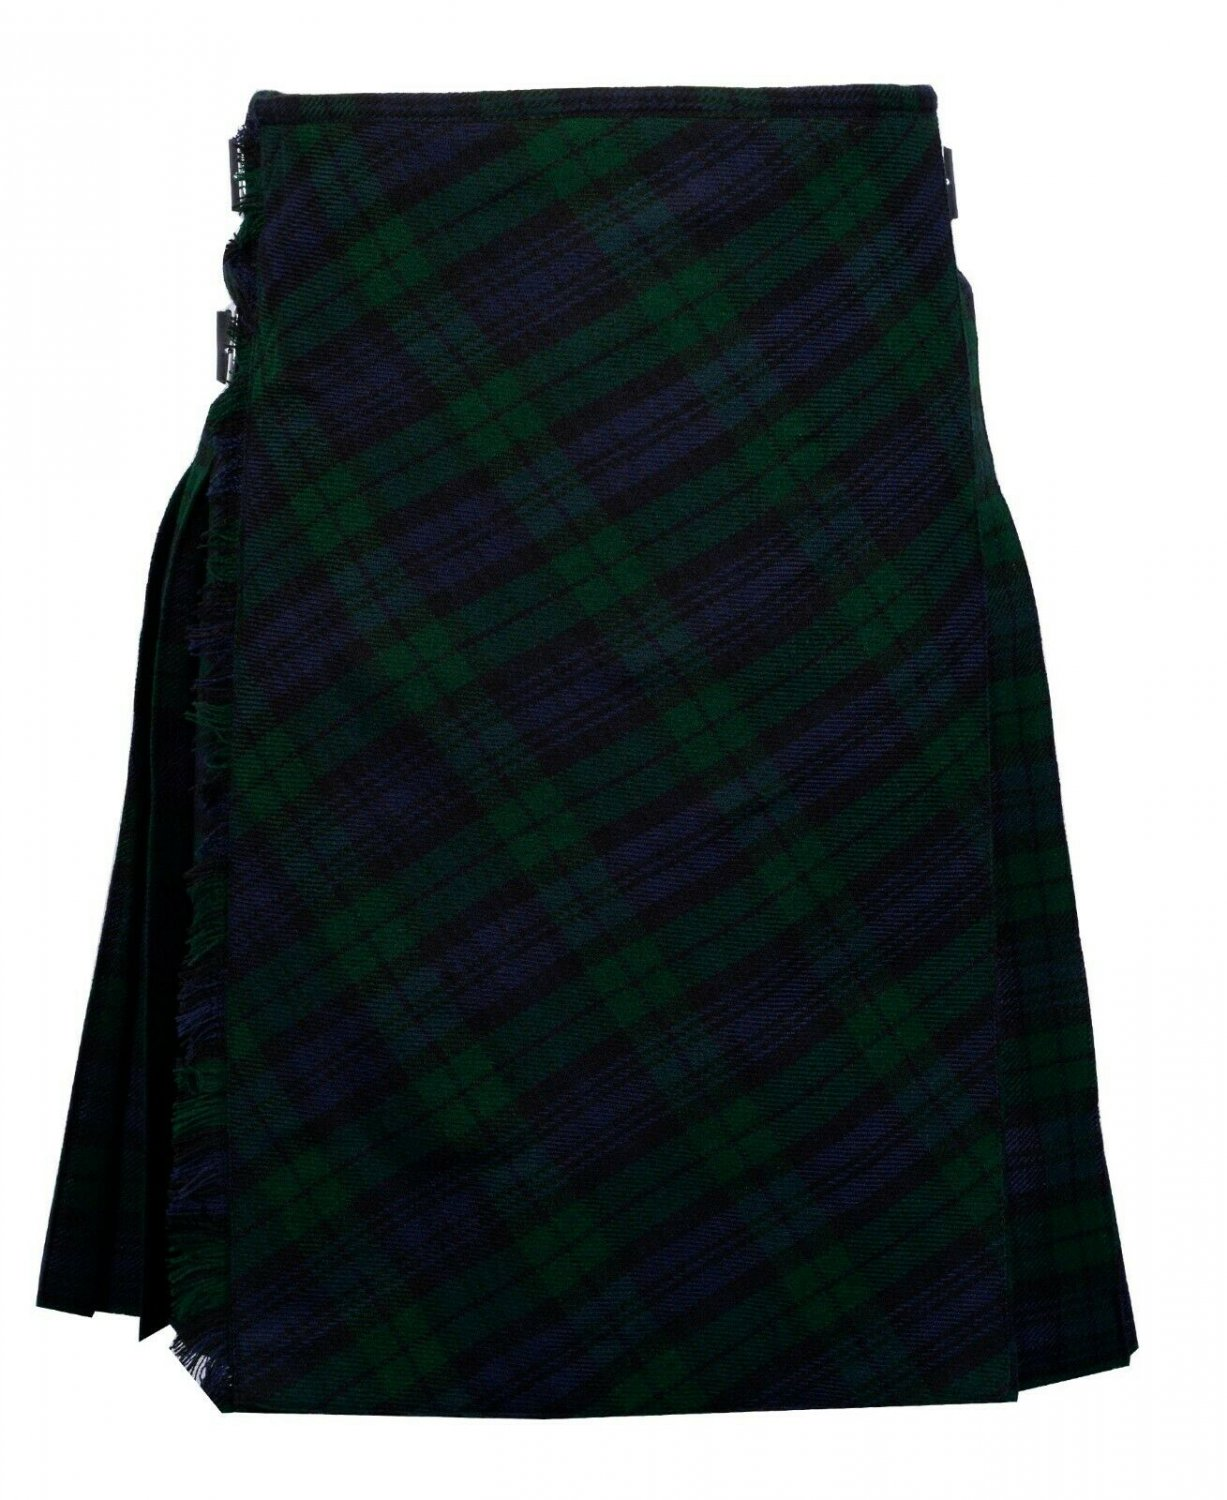 60 size Black Watch tartan Bias Apron Traditional 5 Yard Scottish Kilt for Men